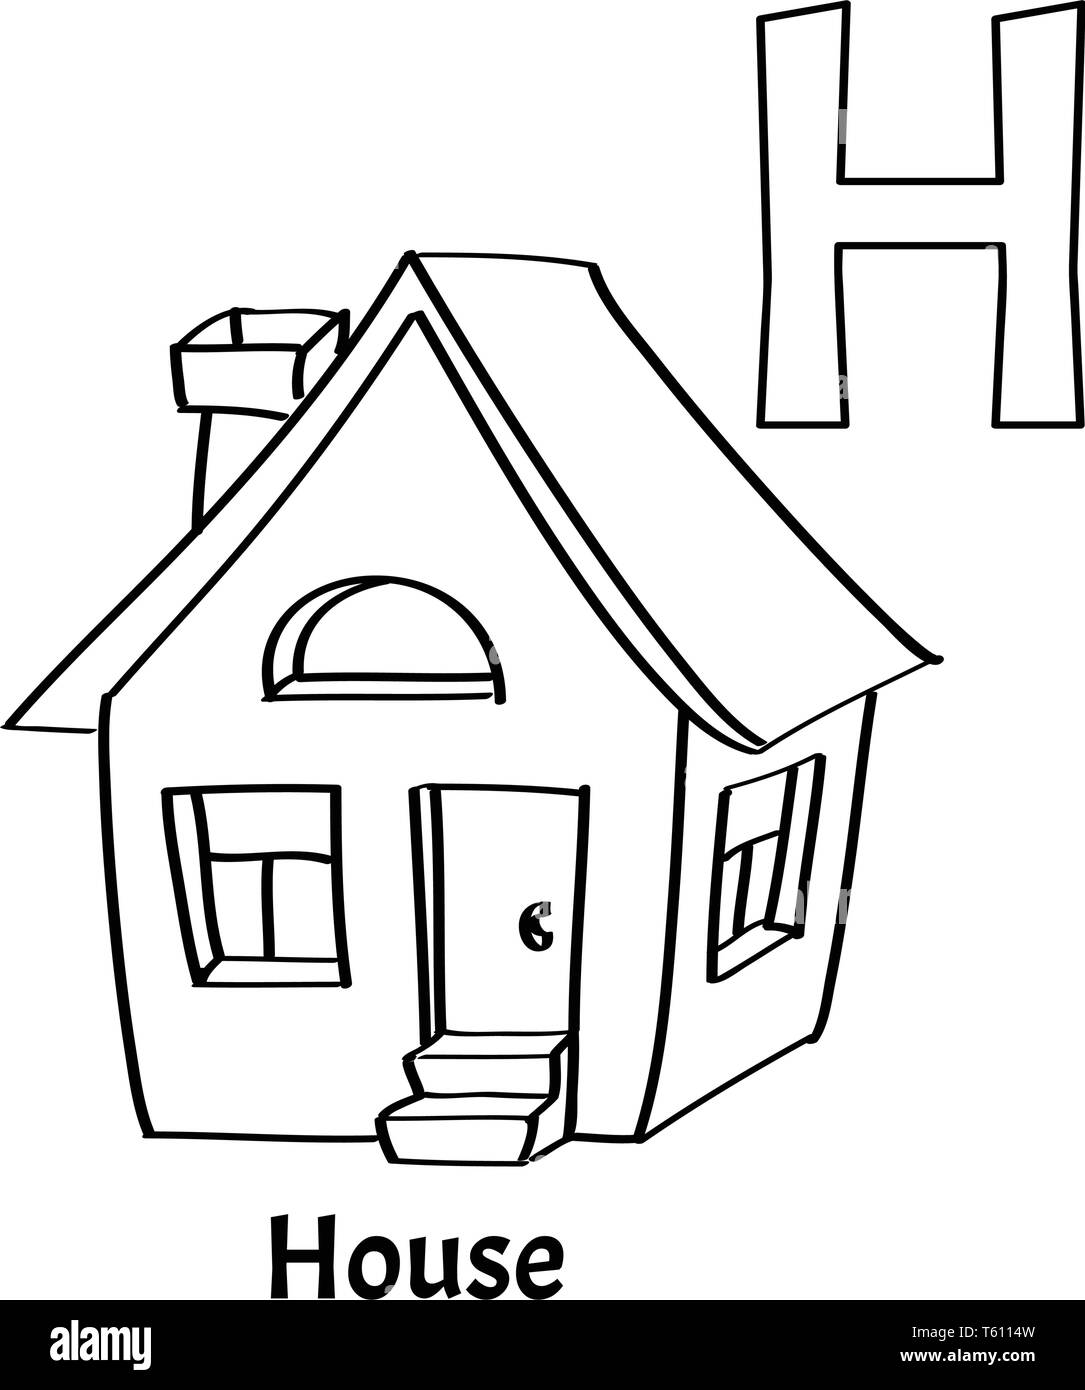 Cartoon House Black And White Stock Photos Amp Images